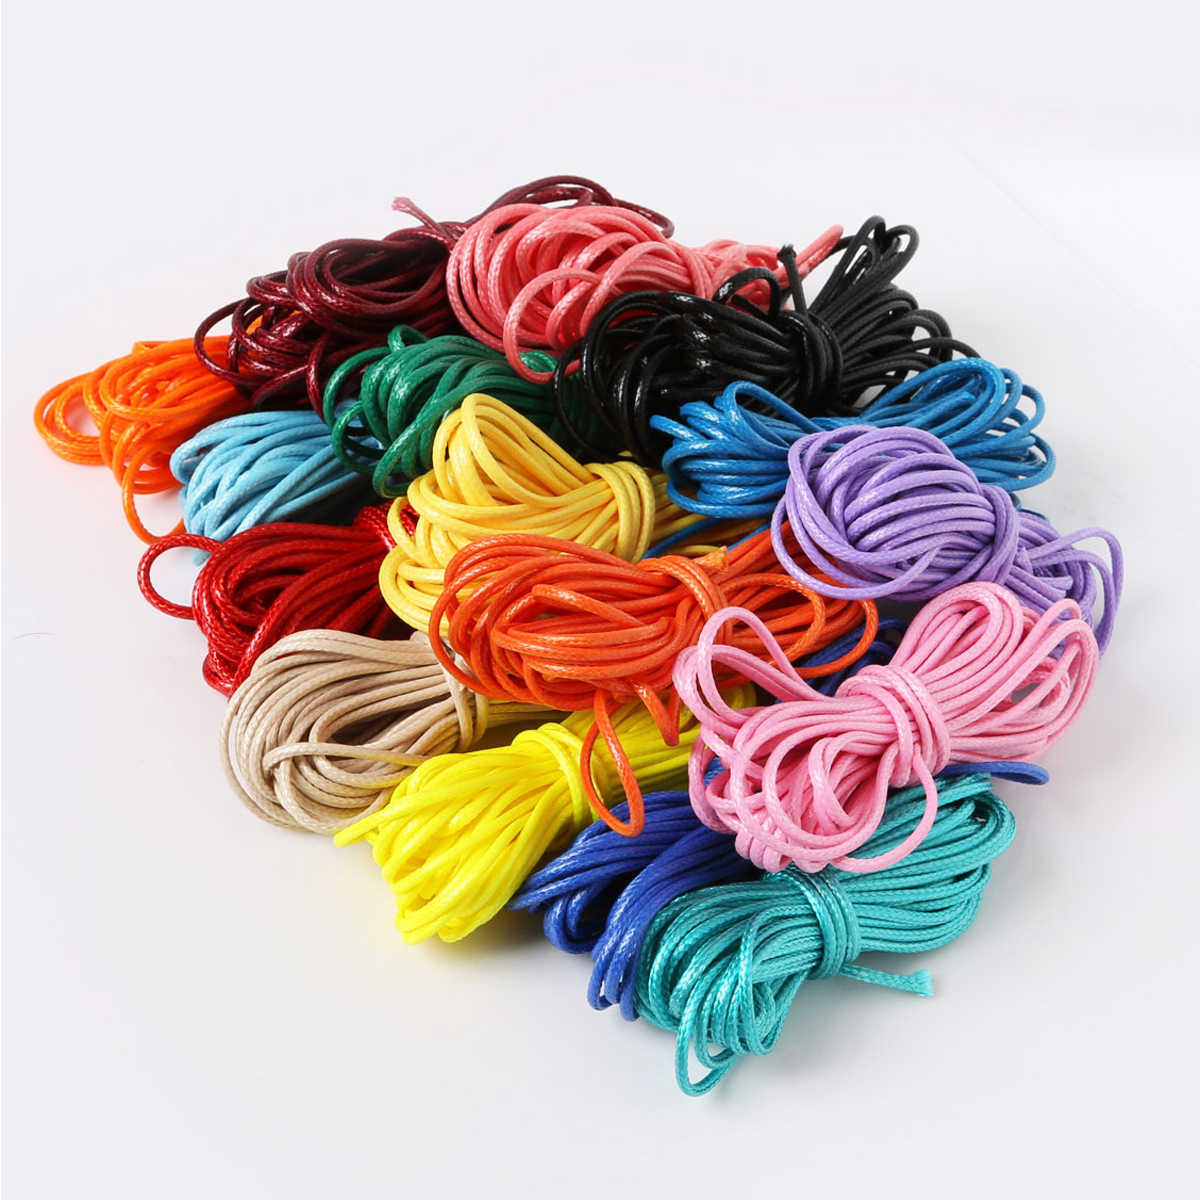 Baby DIY Pacifier Clips Fixed Rope 2mm Colorful Jewelry Bracelet Crib Toy Knitting Rope Teething Waxed Wind Rope